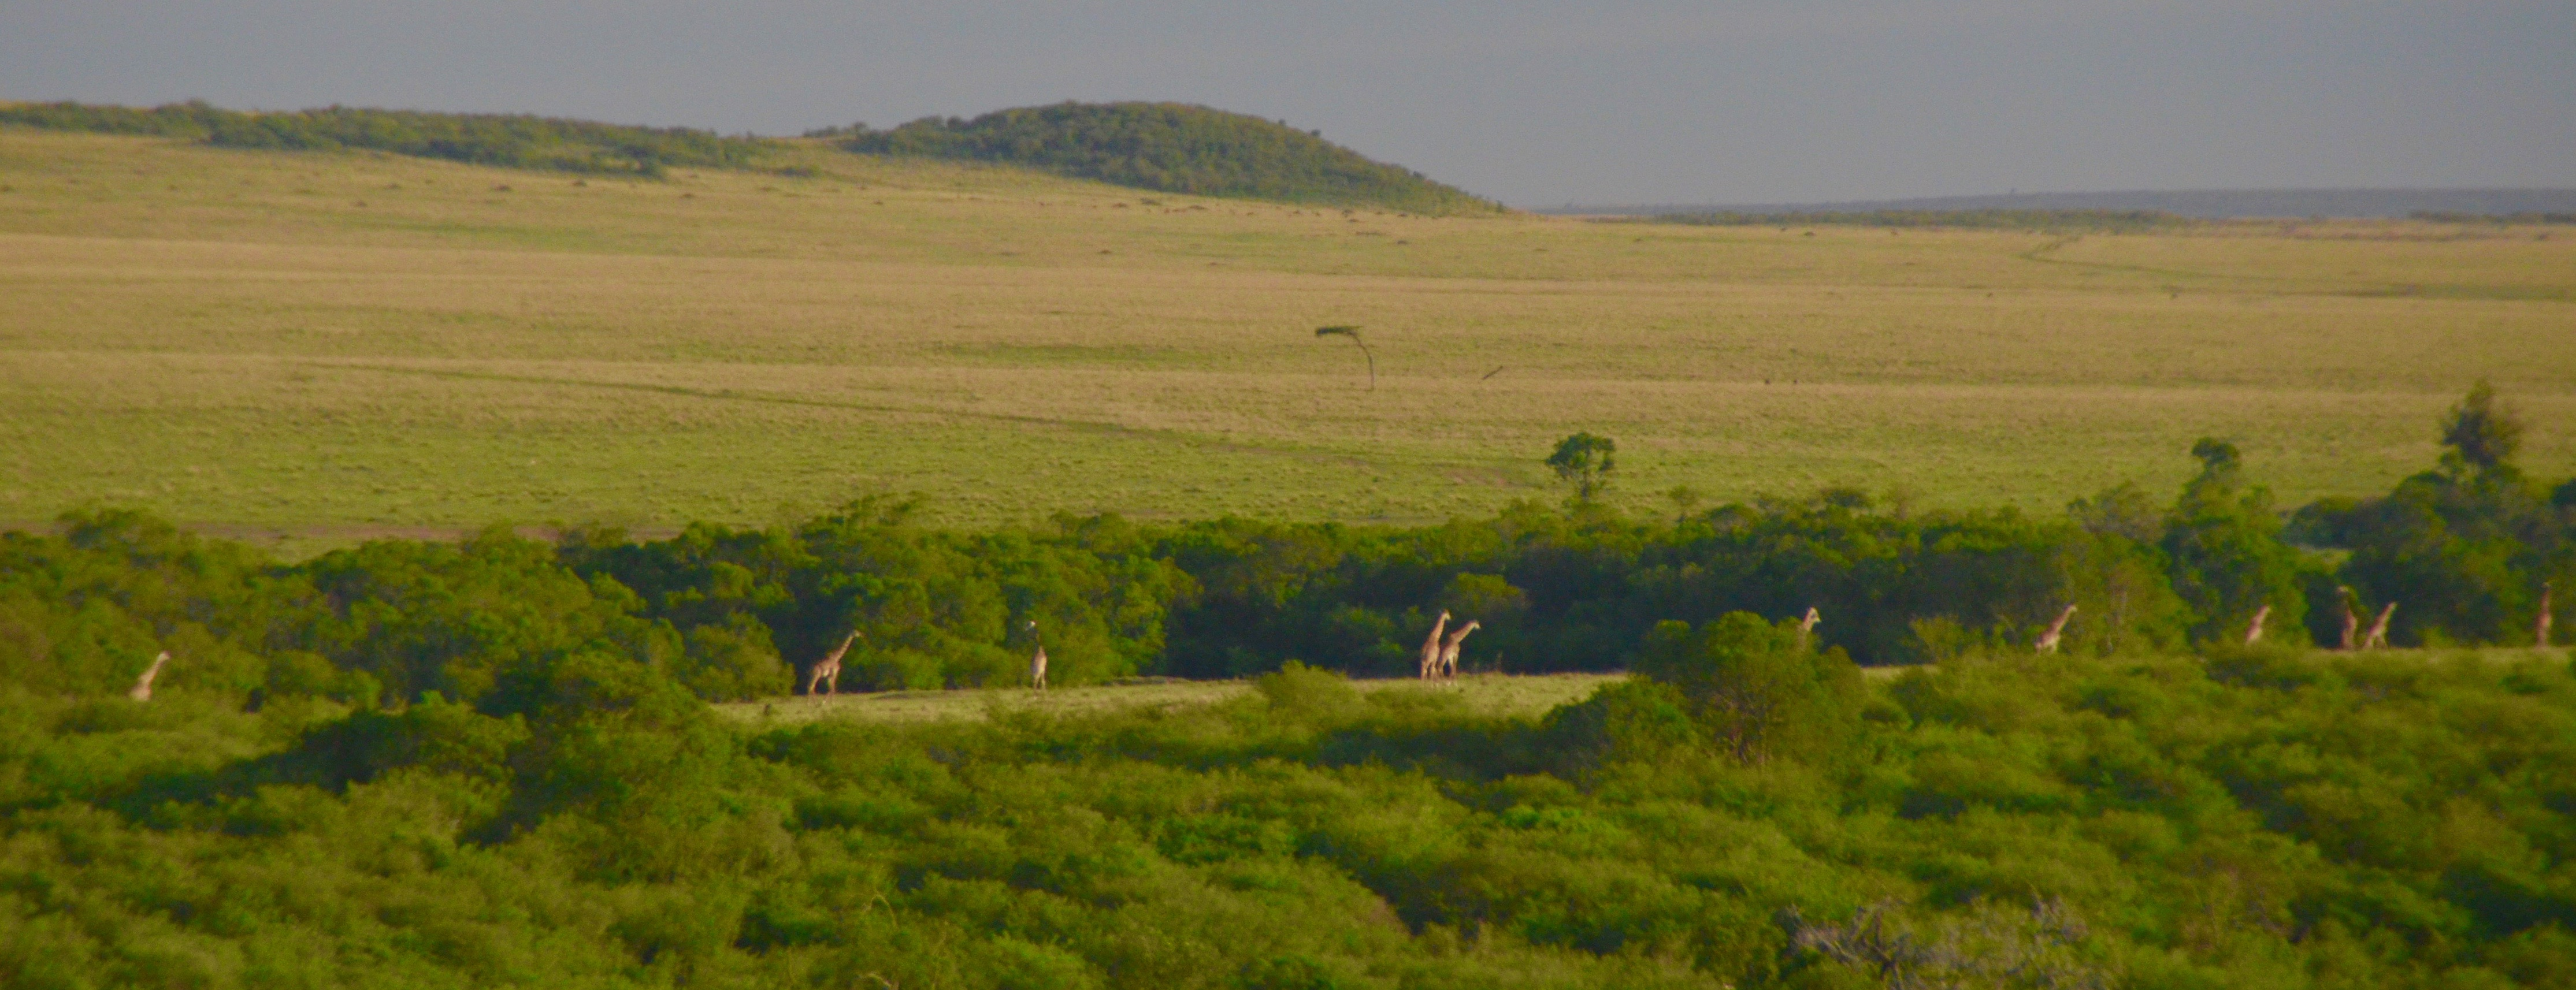 Giraffes on the Move, Masai Mara